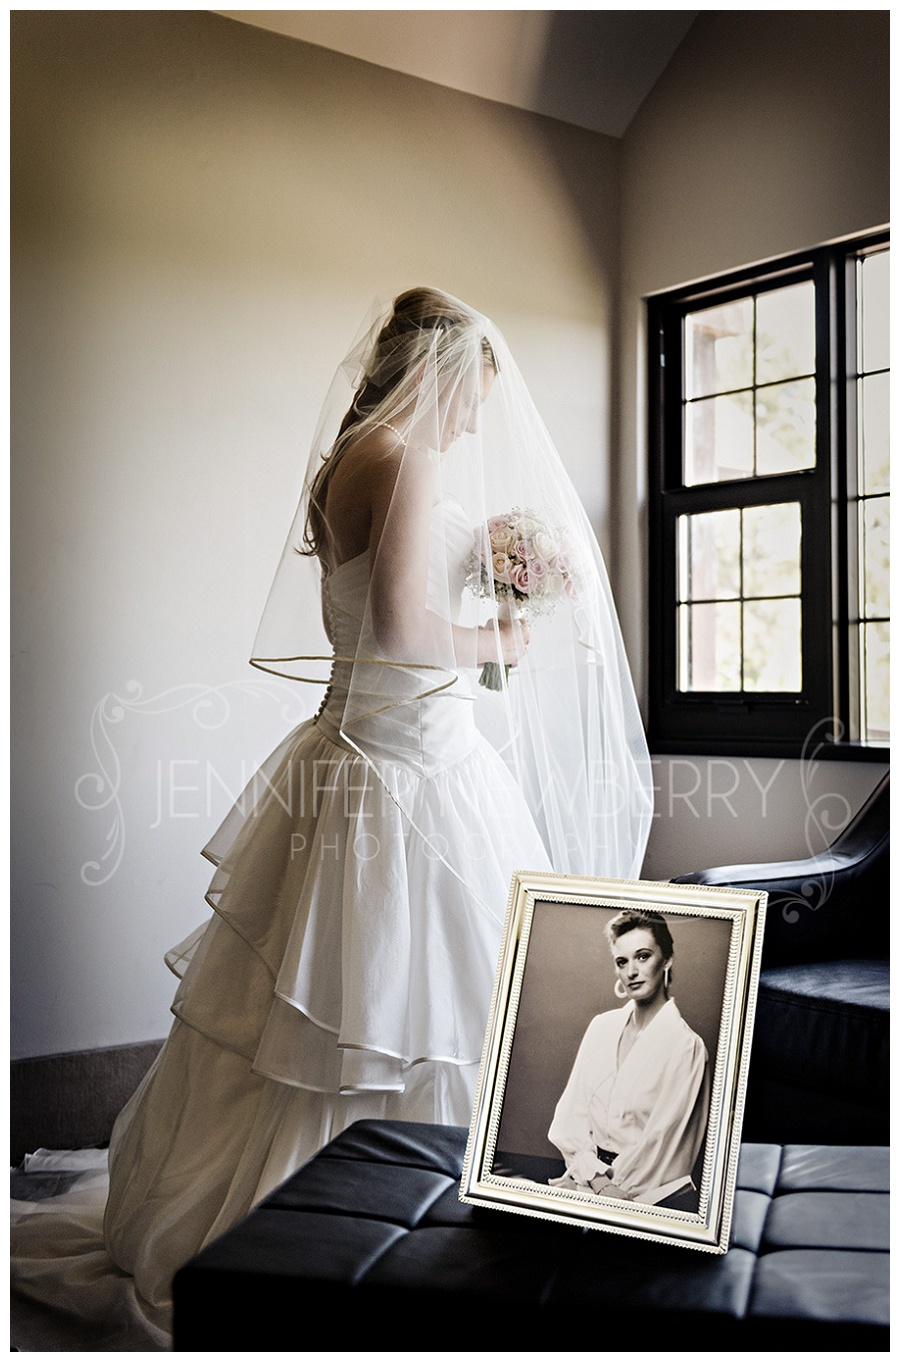 The Manor wedding bridal portrait by The Manor wedding photographer www.jnphotography.ca @filemanager